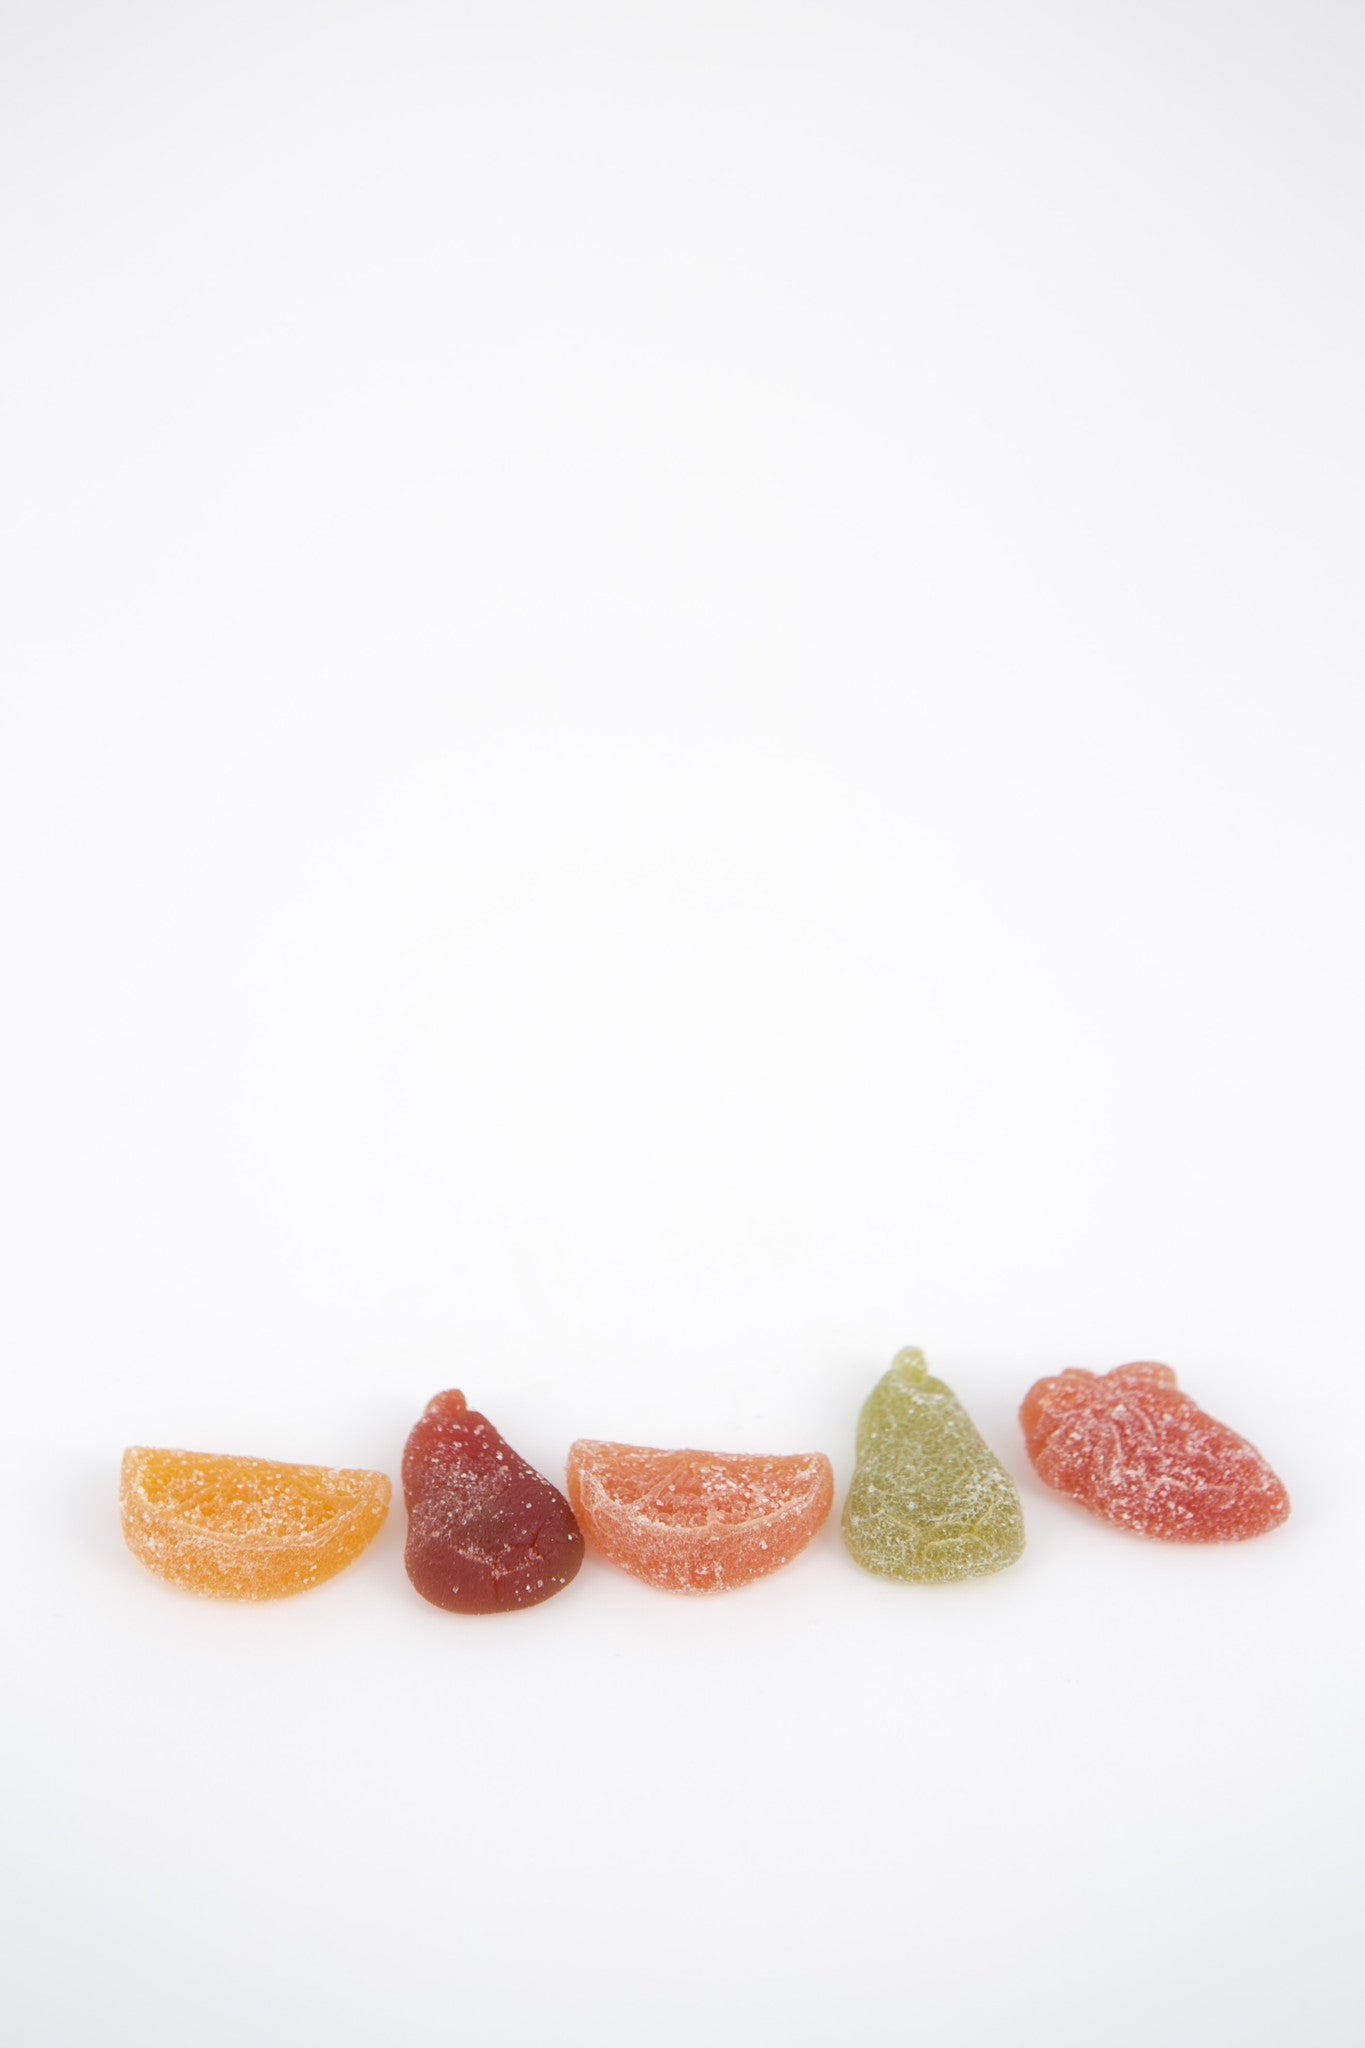 Sour  Gummy Fruits